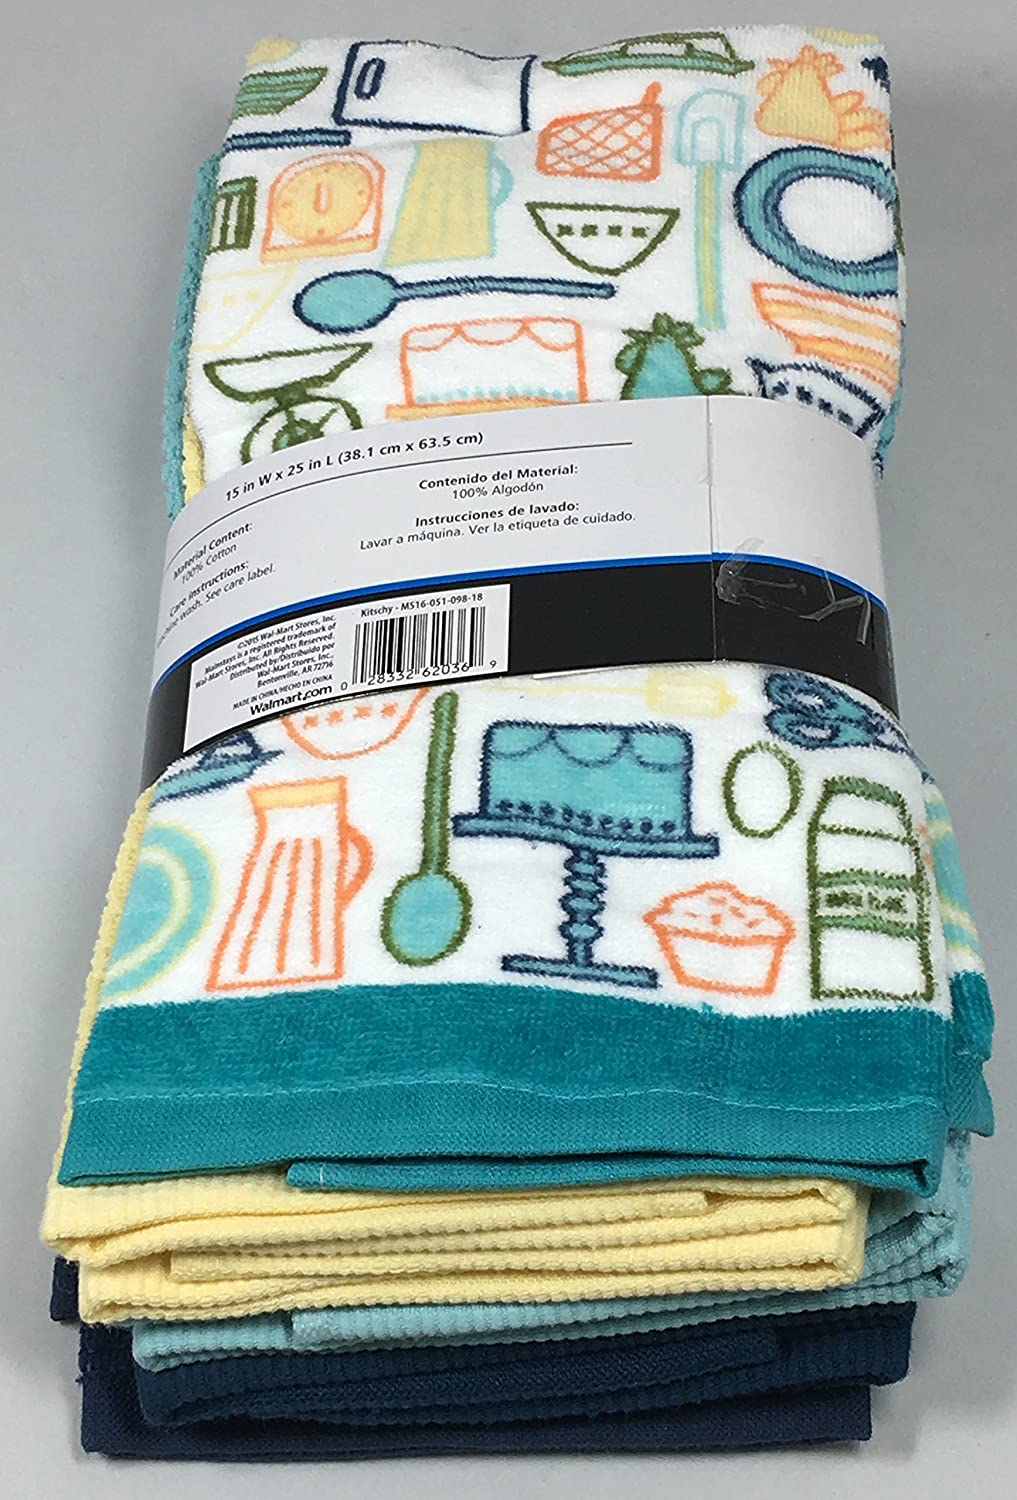 Amazon.com: Kitschy Kitchen Towels 5 Piece Set - 2 Print and 3 Plain: Home & Kitchen